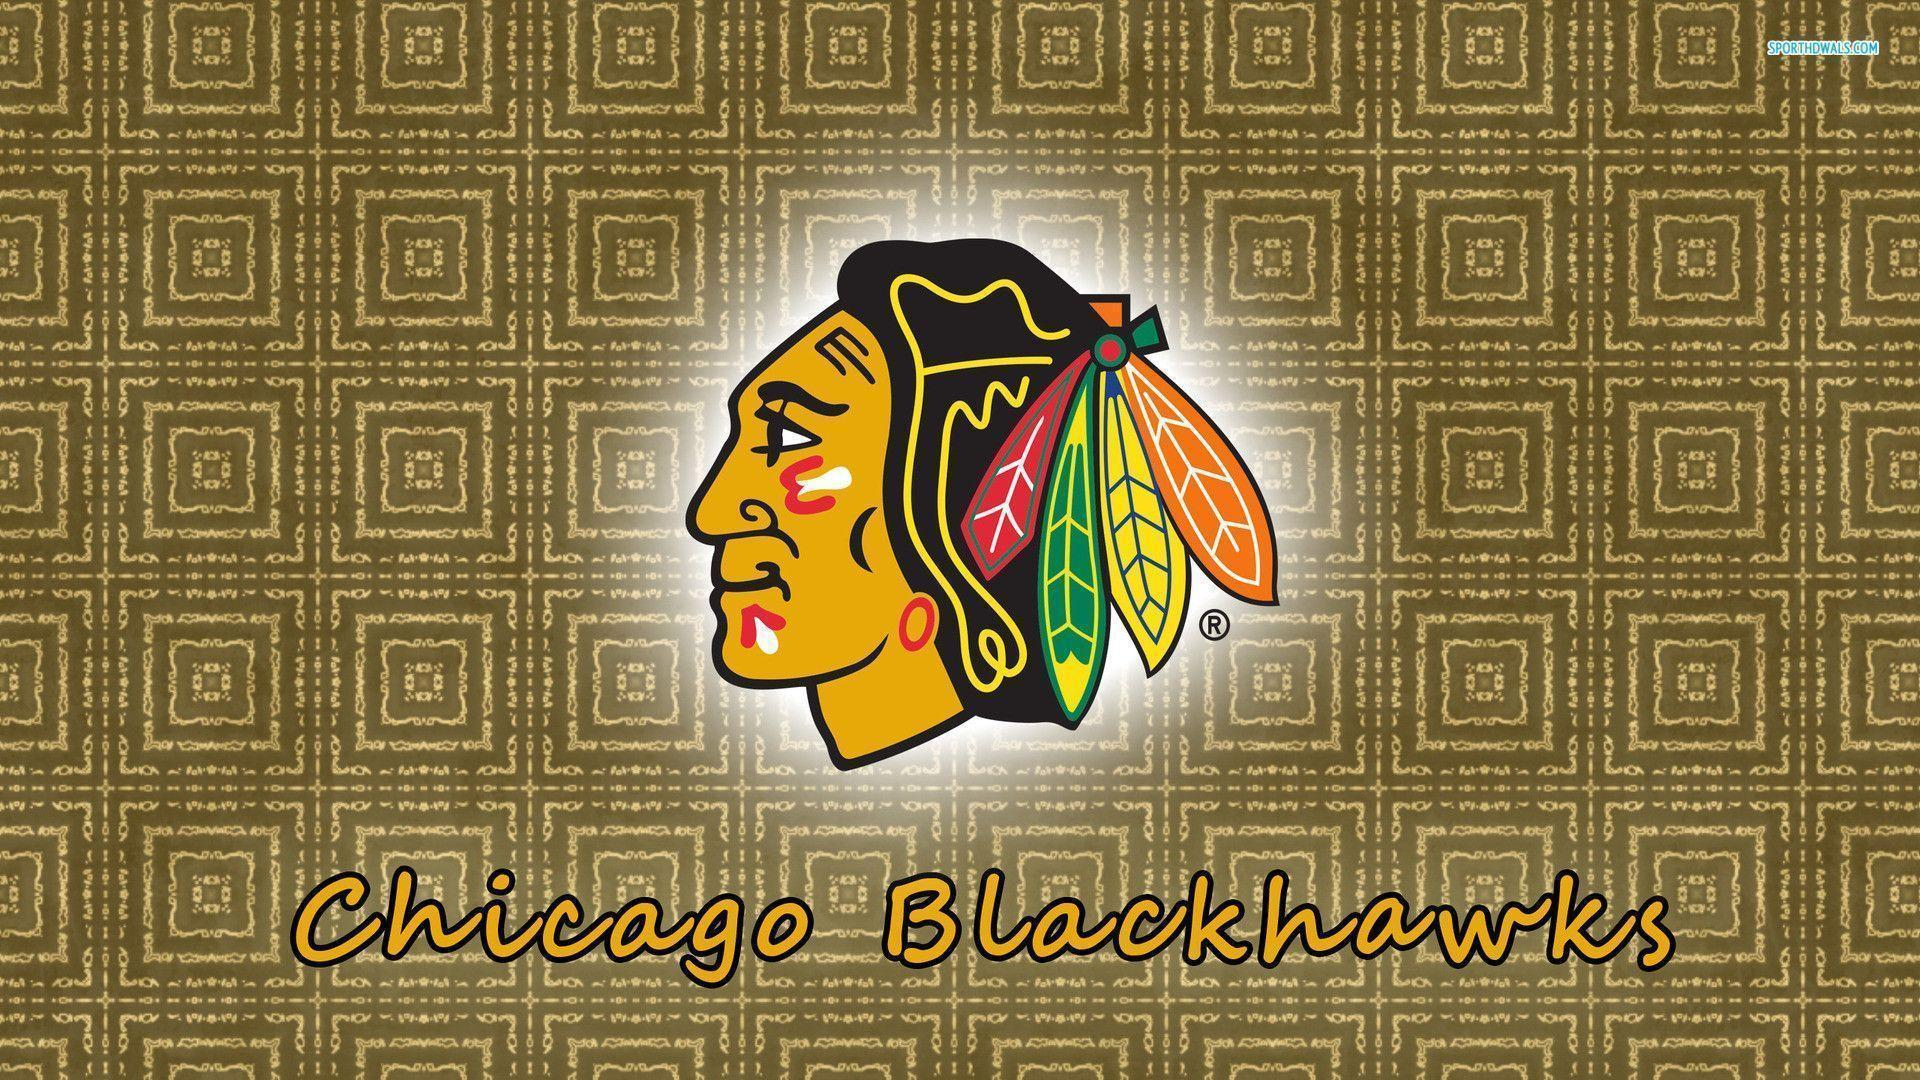 Free chicago blackhawks wallpapers wallpaper cave chicago blackhawks wallpapers chicago blackhawks background page 4 voltagebd Images